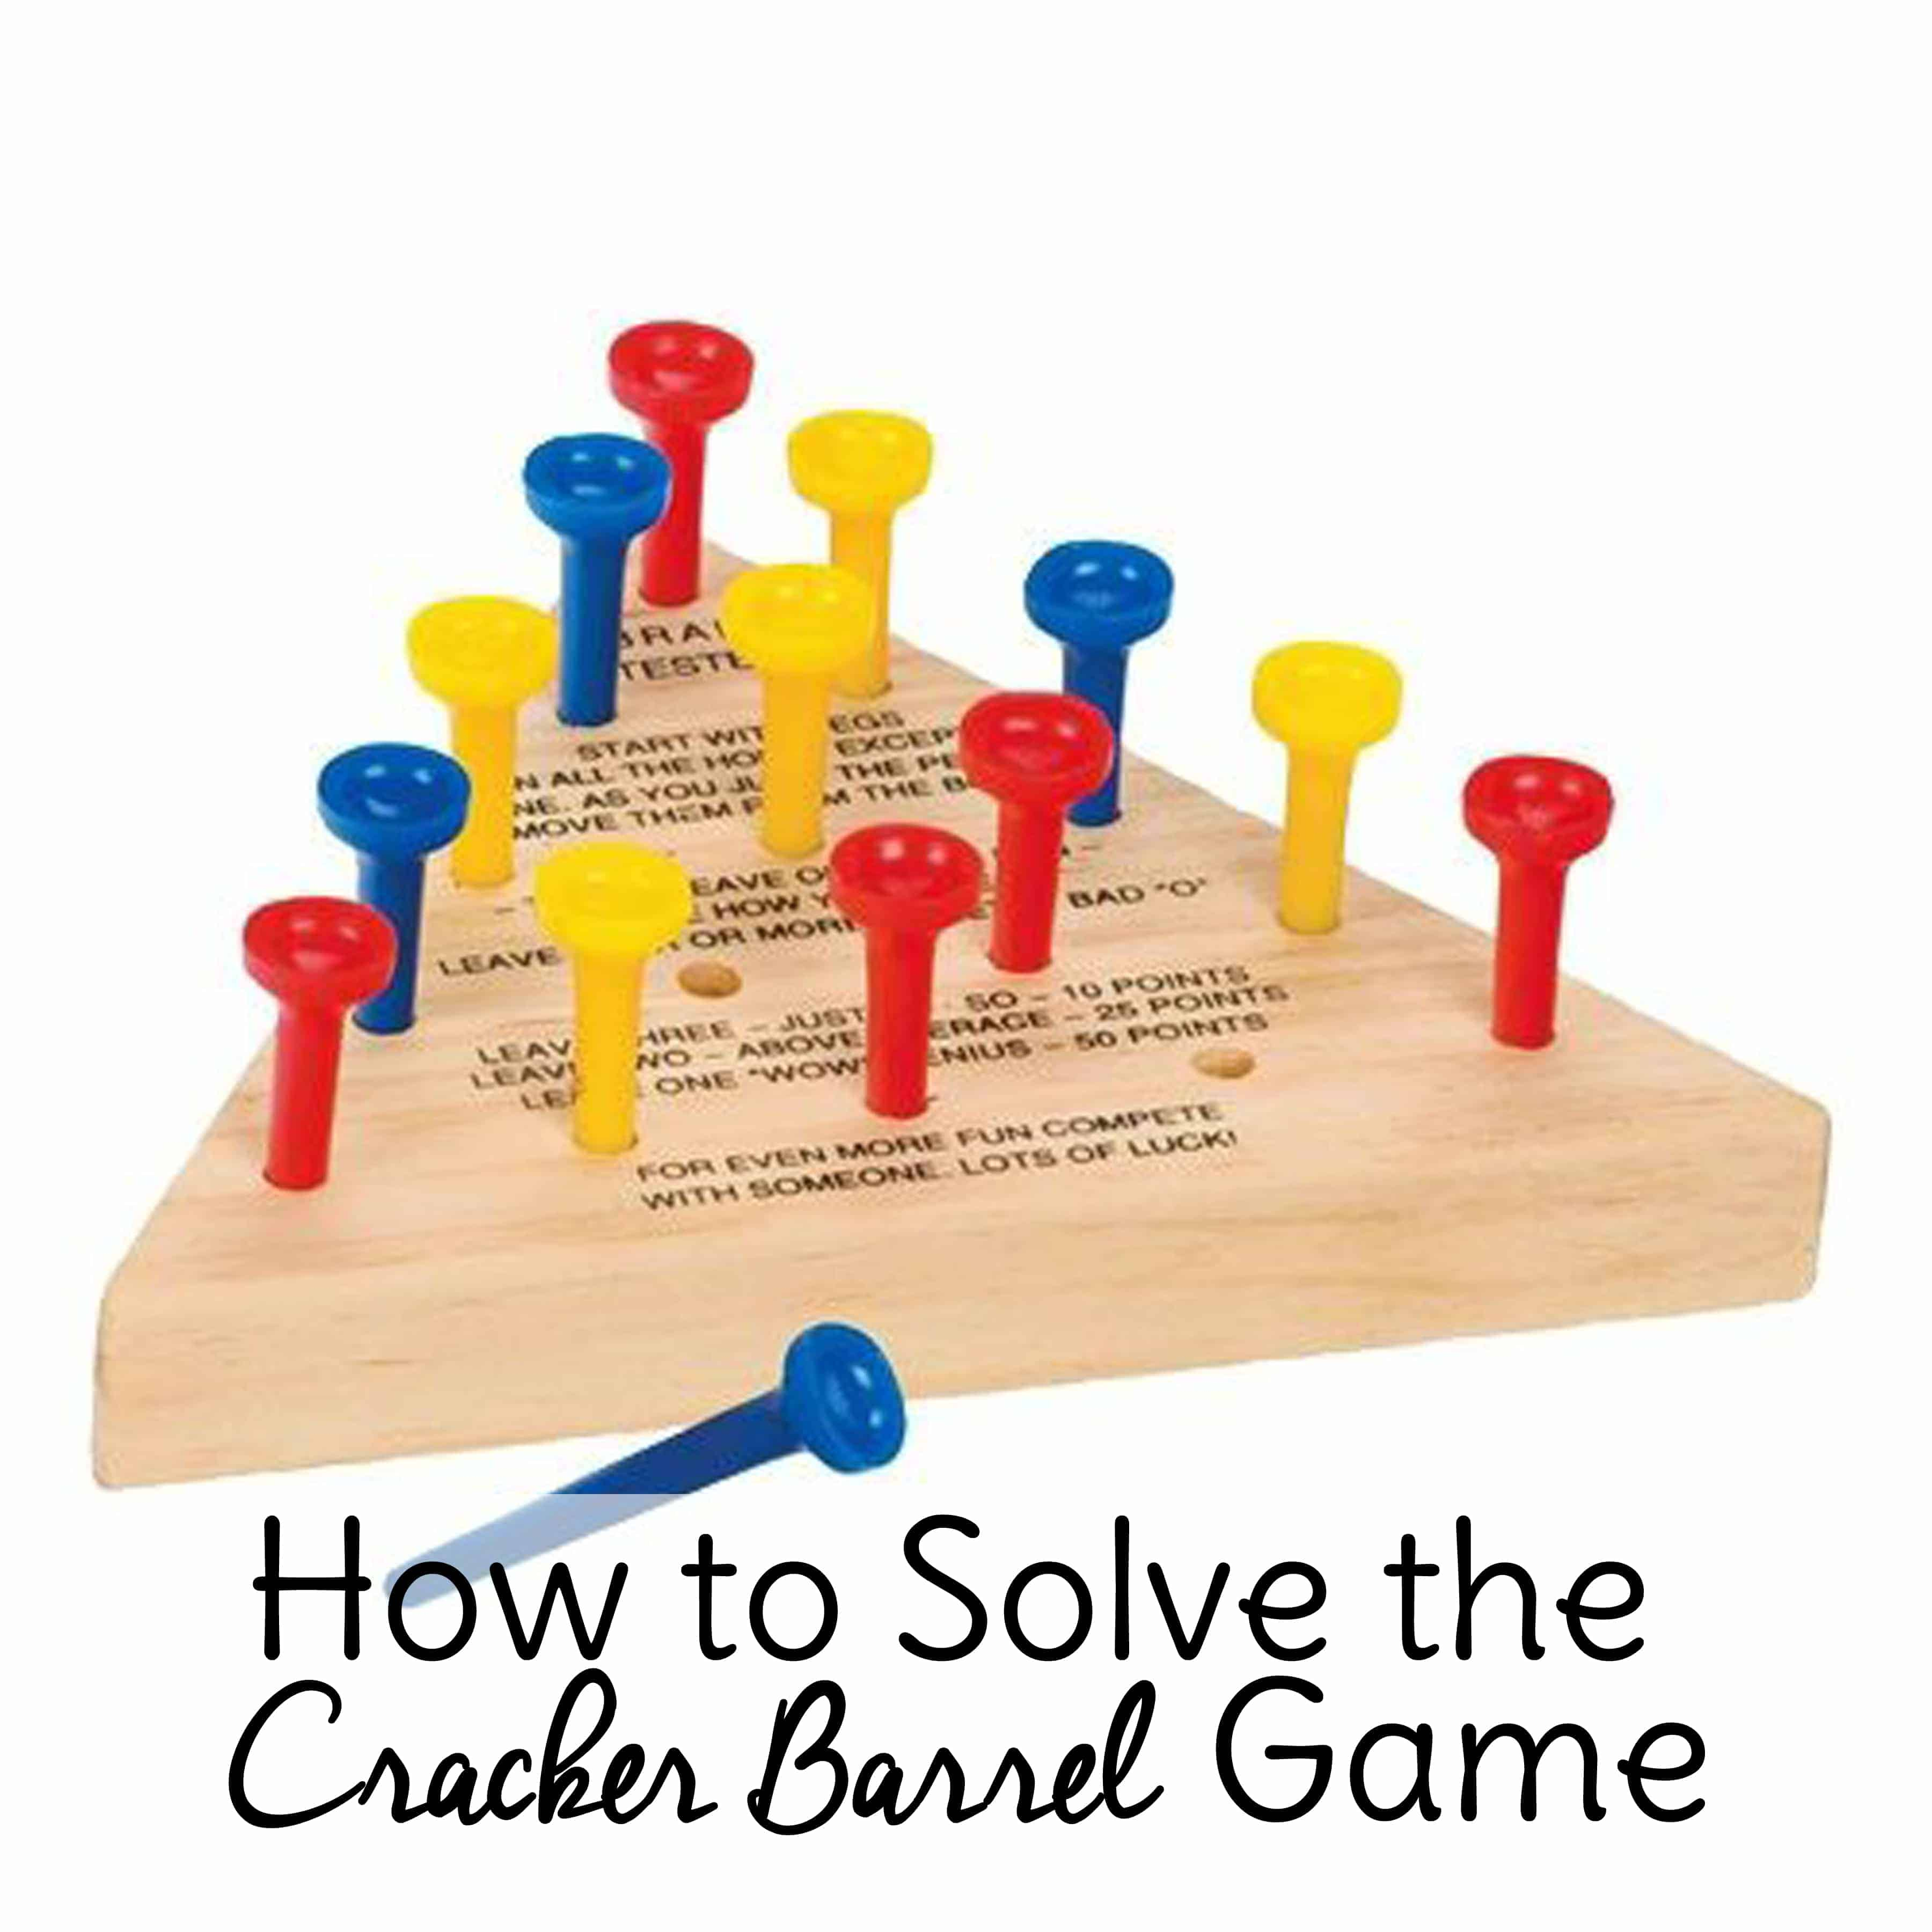 You want so badly to be a genius, but that little triangle peg game keeps reminding you that you're an ignoramous. You are smarter than this peg board game! Promise.